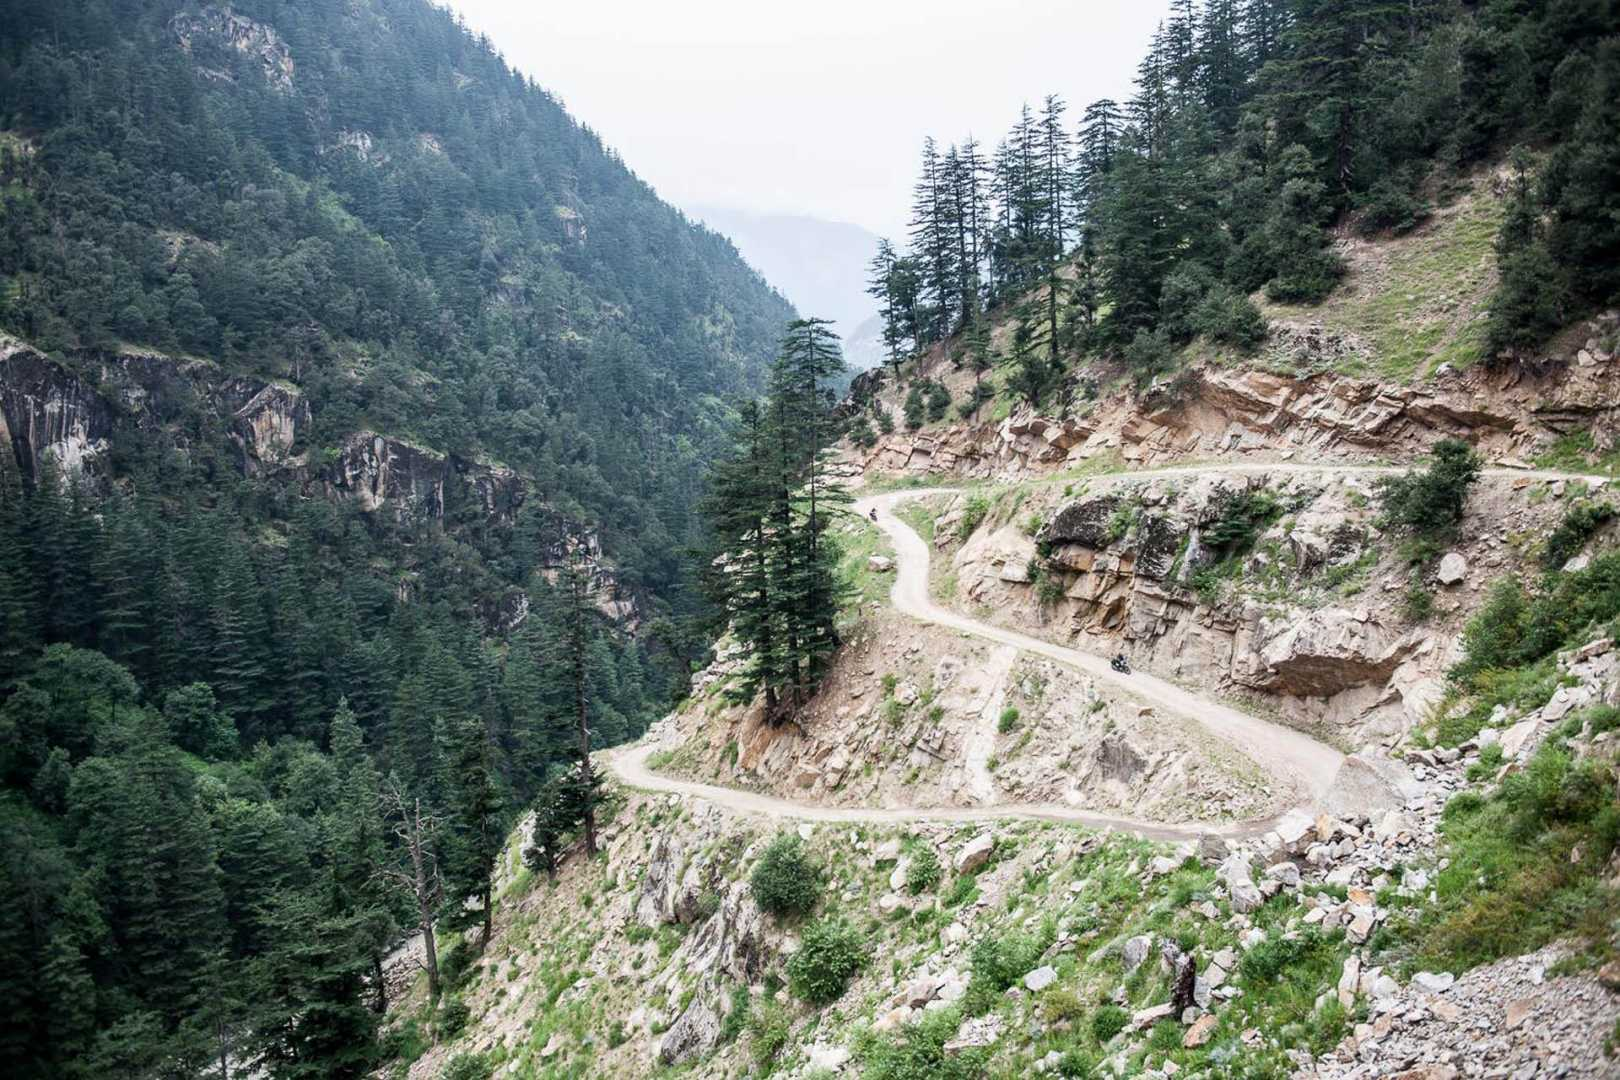 Rocky road through the Himalayas